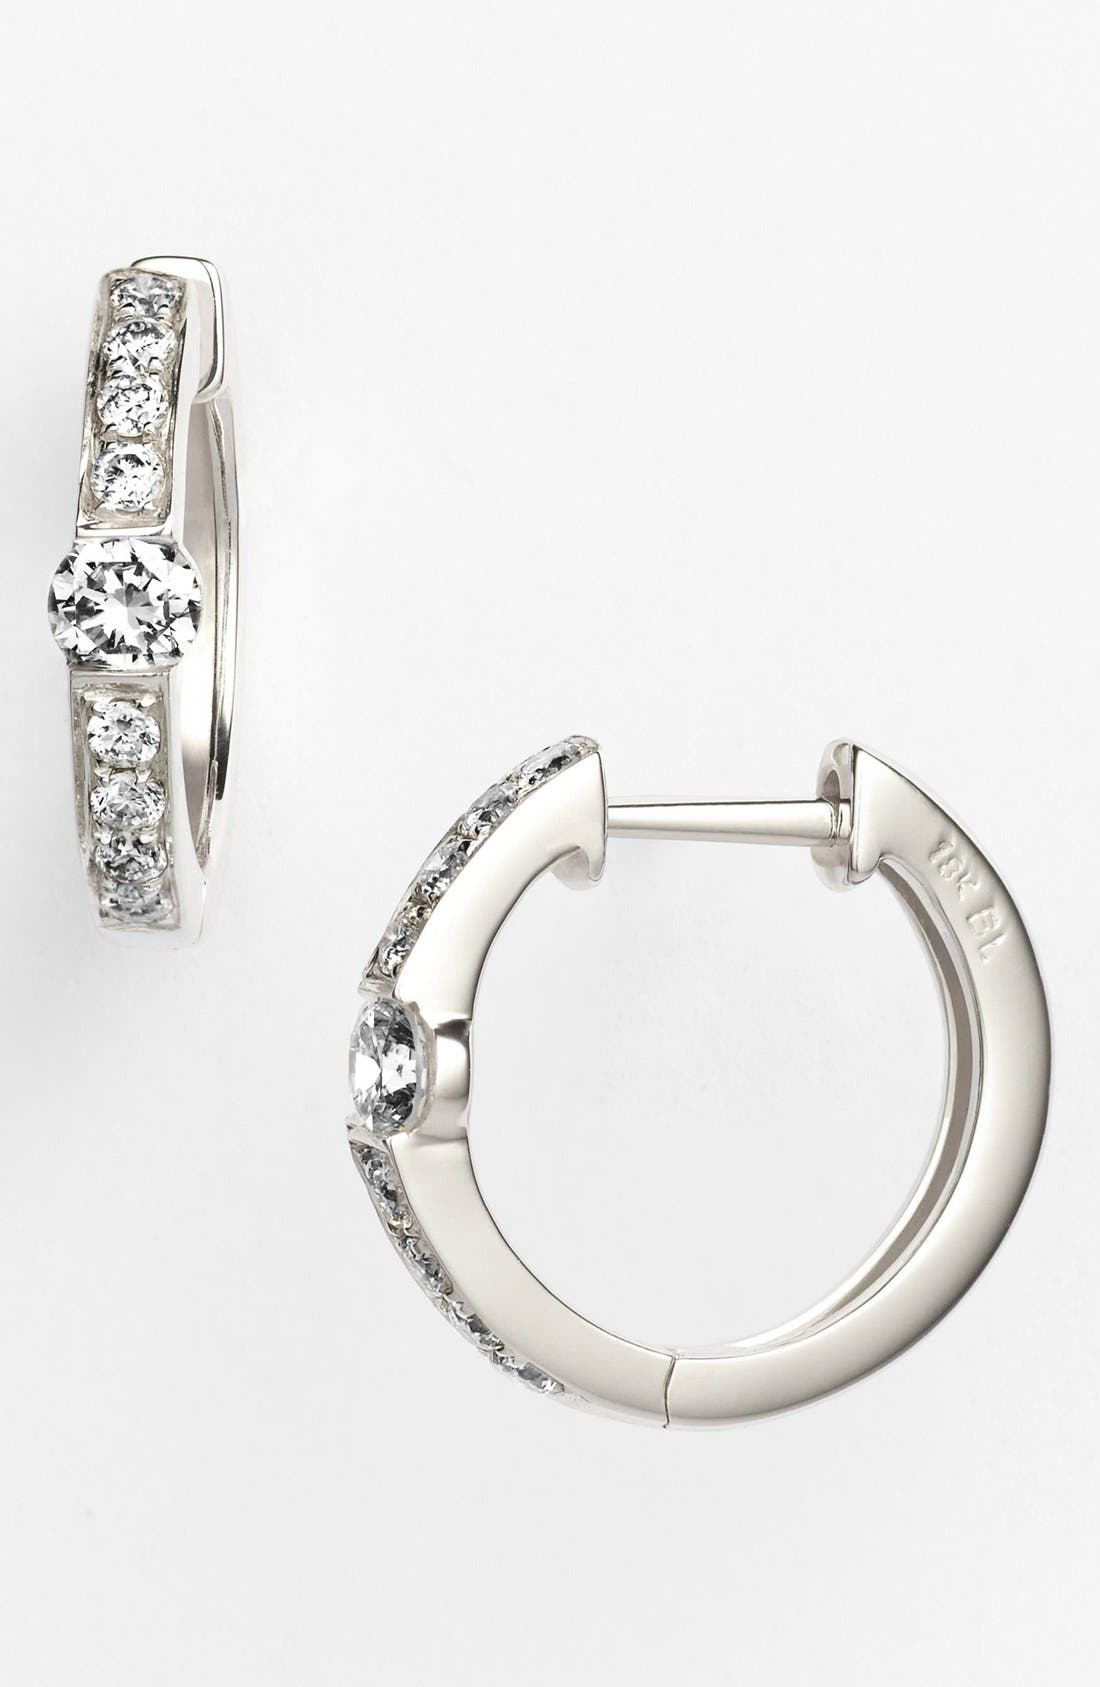 Main Image - Bony Levy 'Linea' Small Diamond Hoop Earrings (Nordstrom Exclusive)